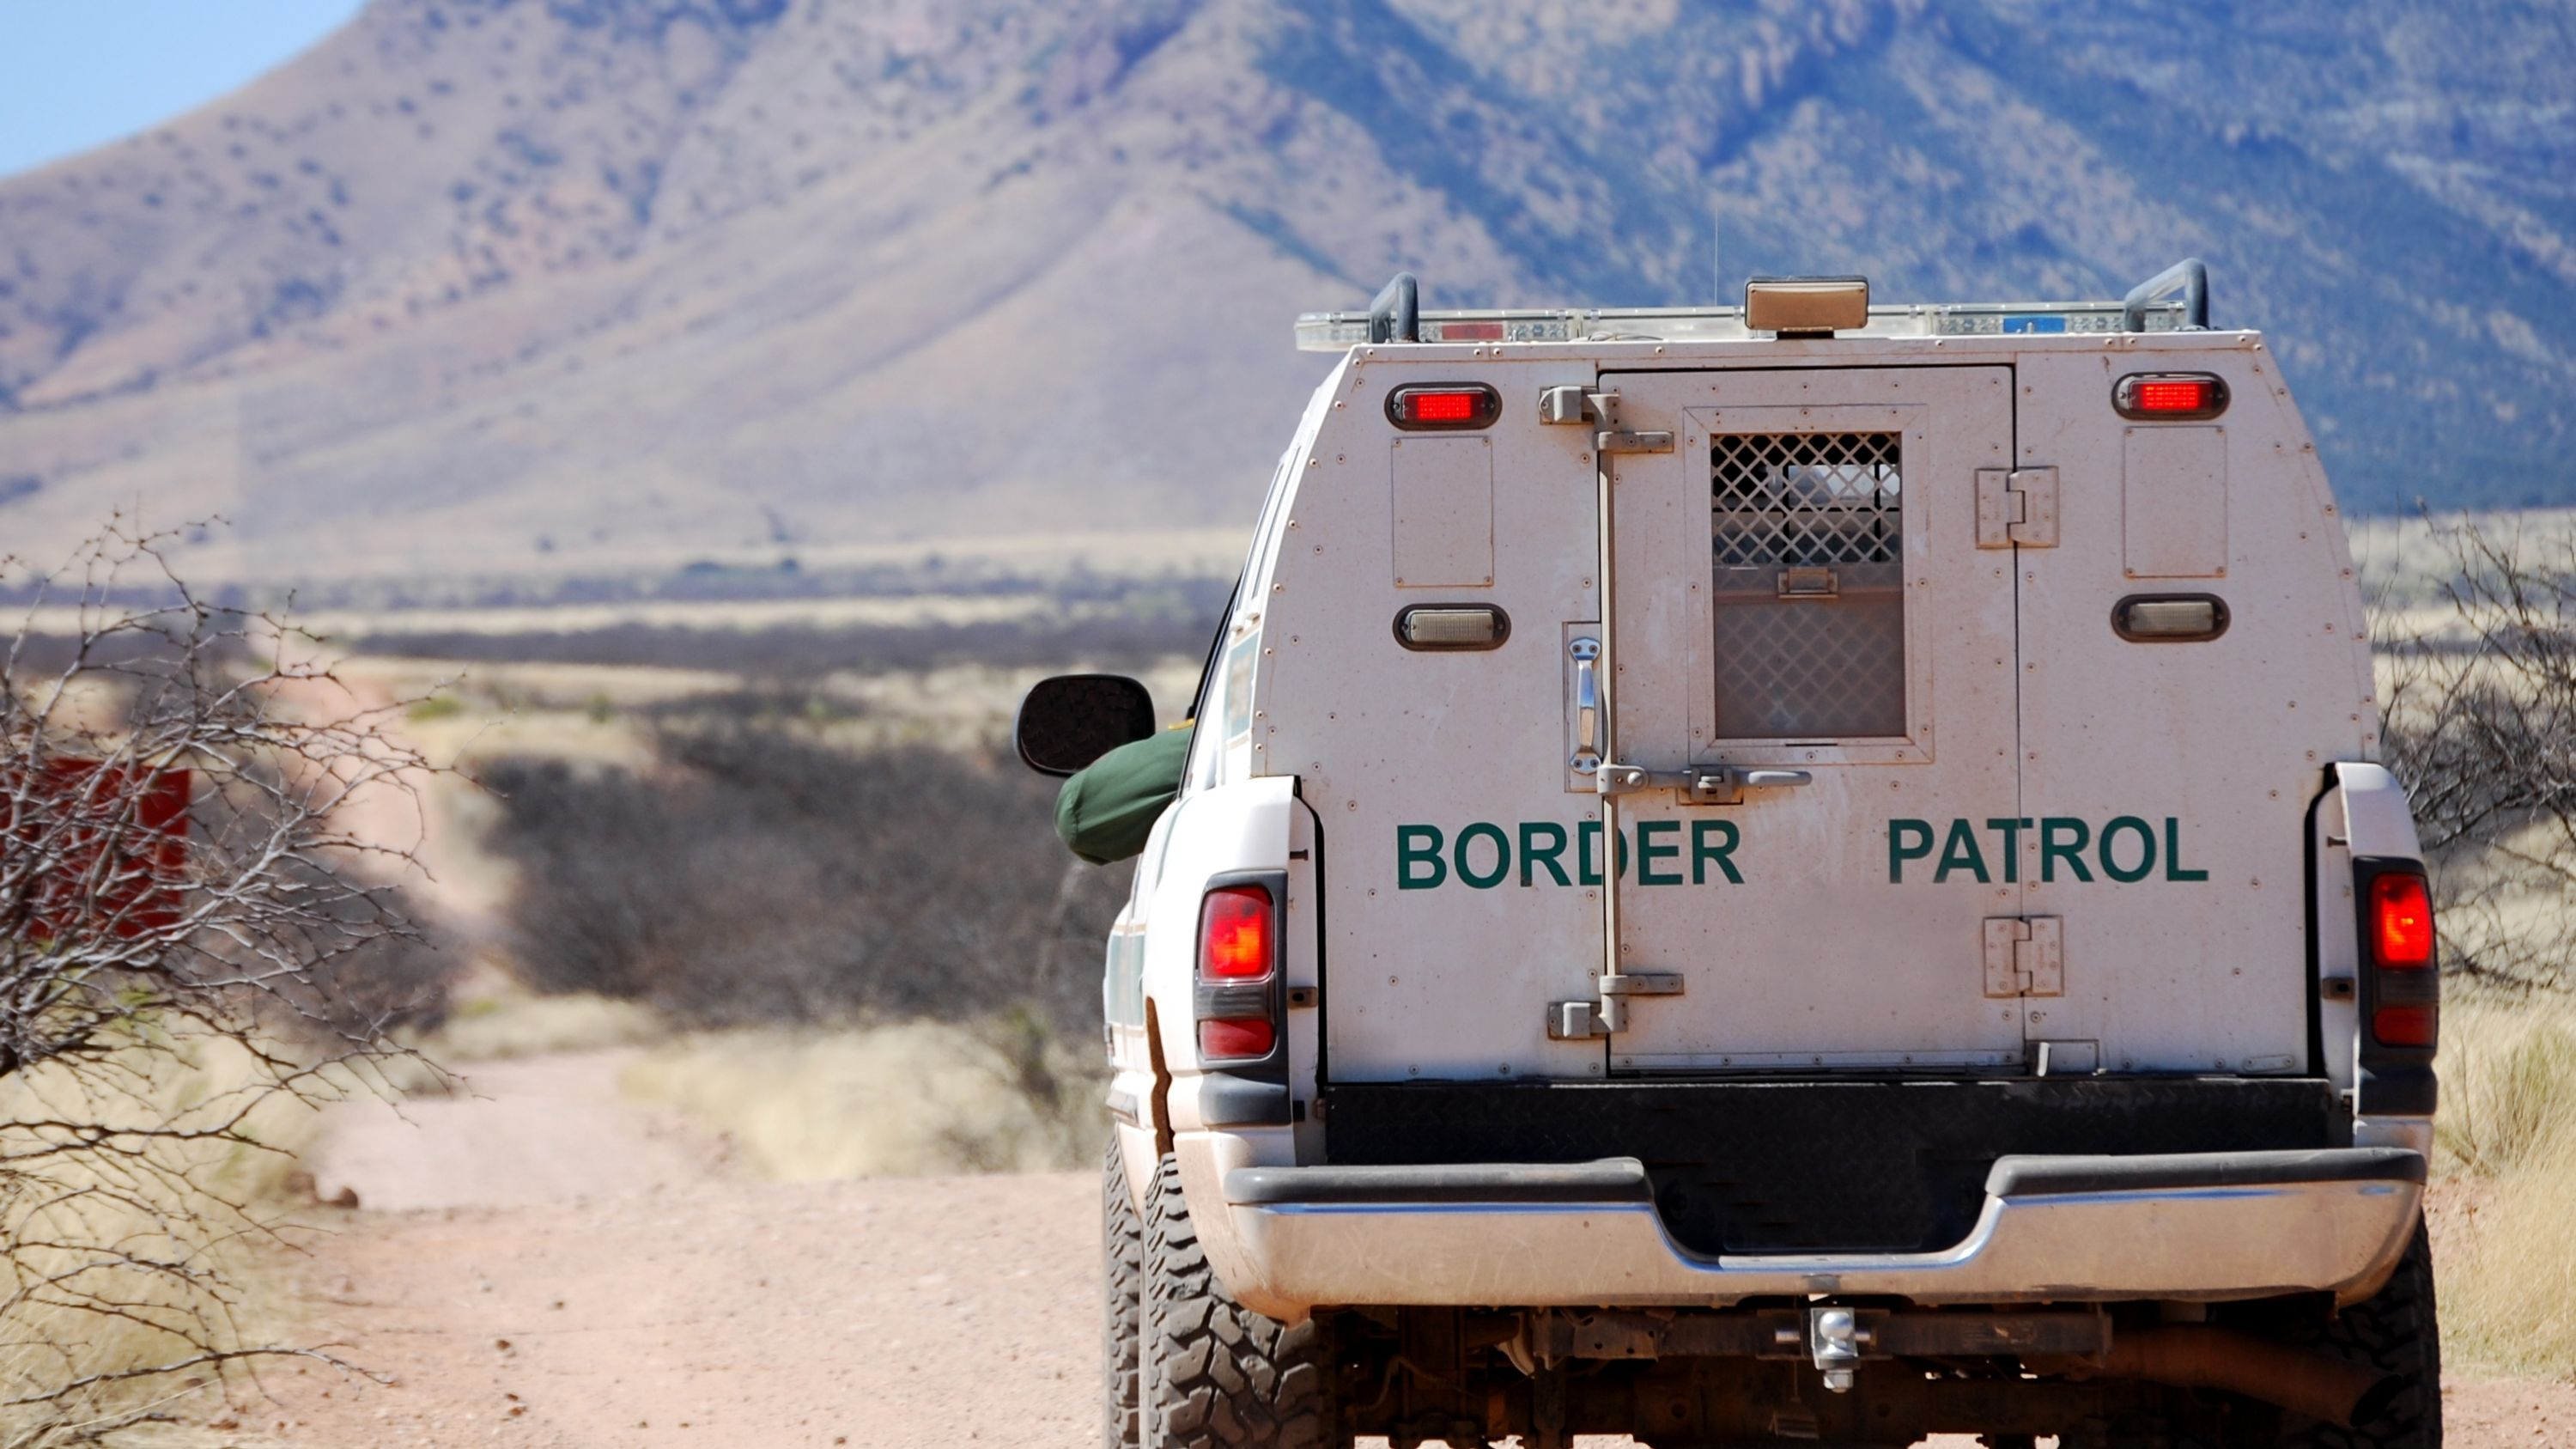 Crisis within a Crisis: U.S. Immigration Law & Policy After COVID 19